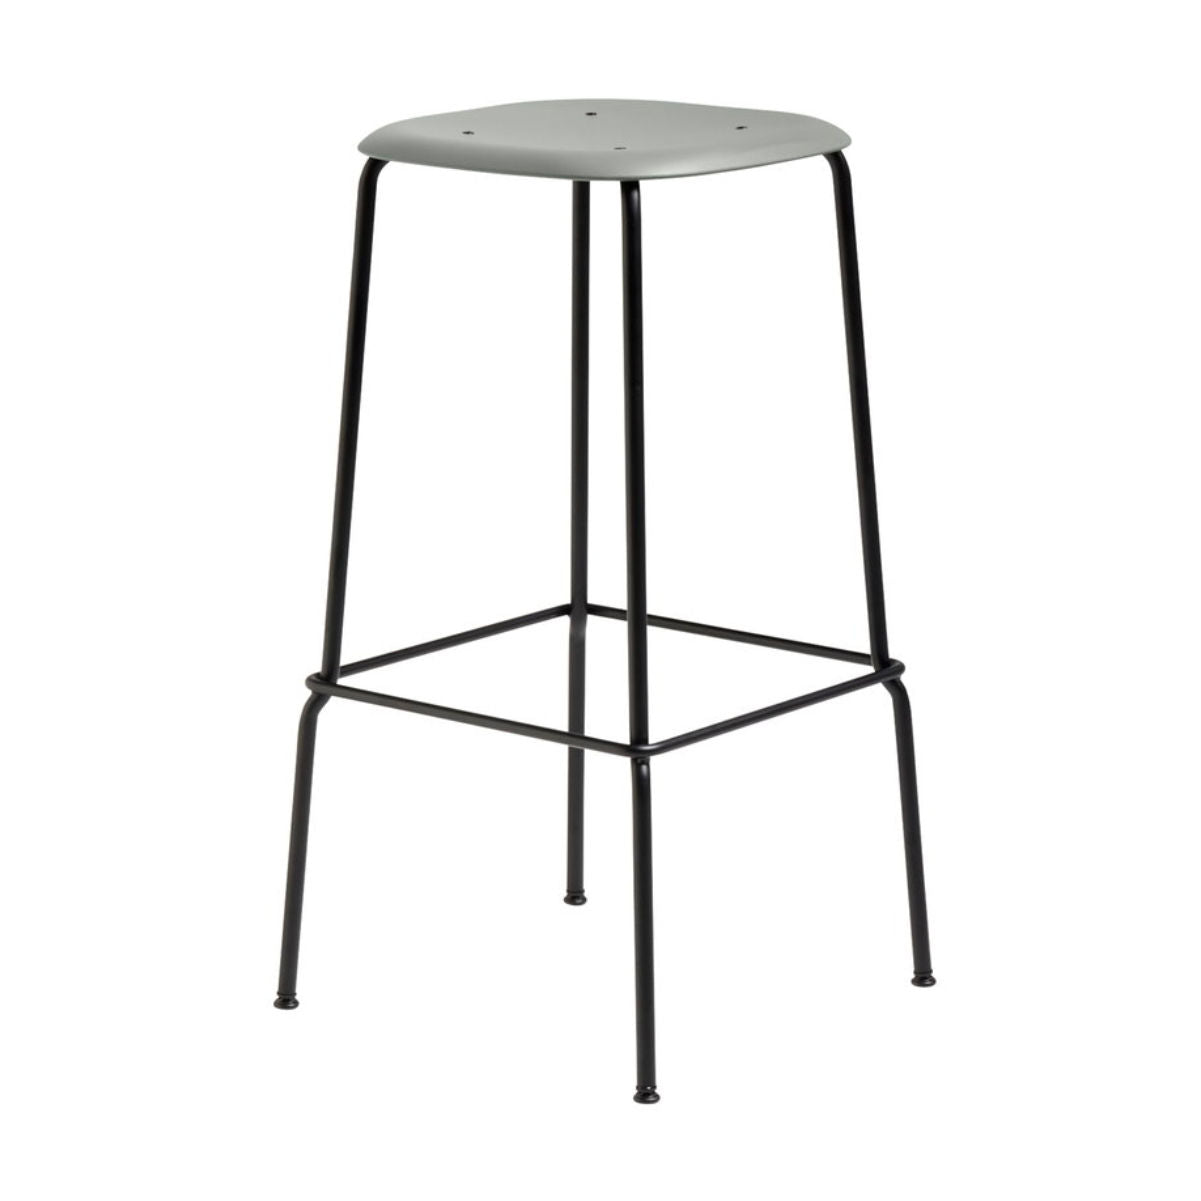 Hay Soft Edge P30 bar stool, dusty green, black